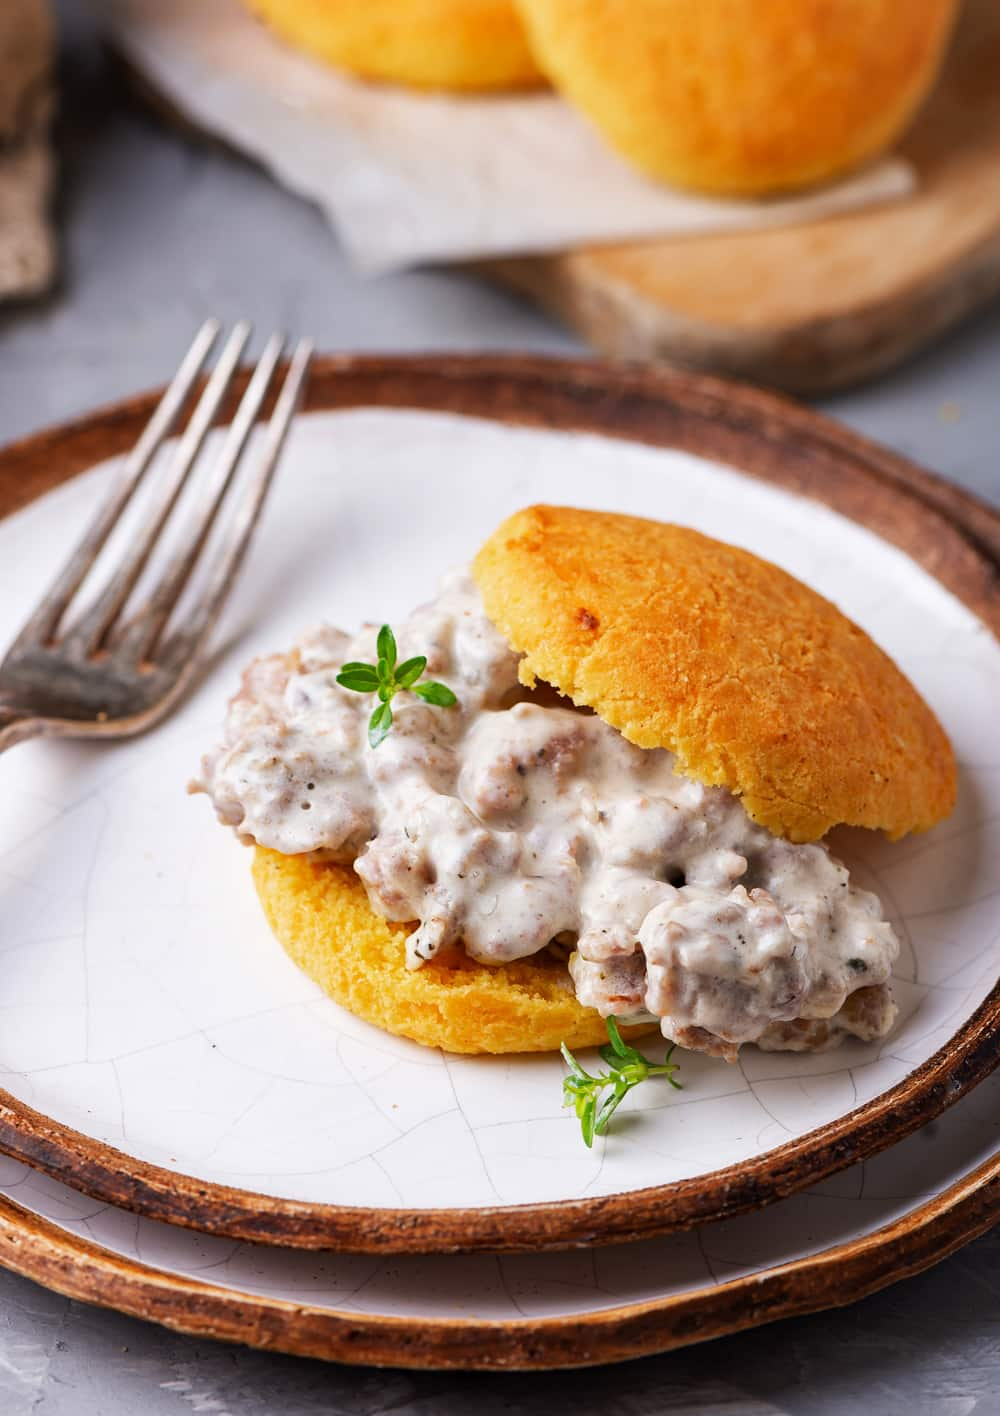 A biscuit filled with gravy on top of a plate that is stacked on top of another plate.